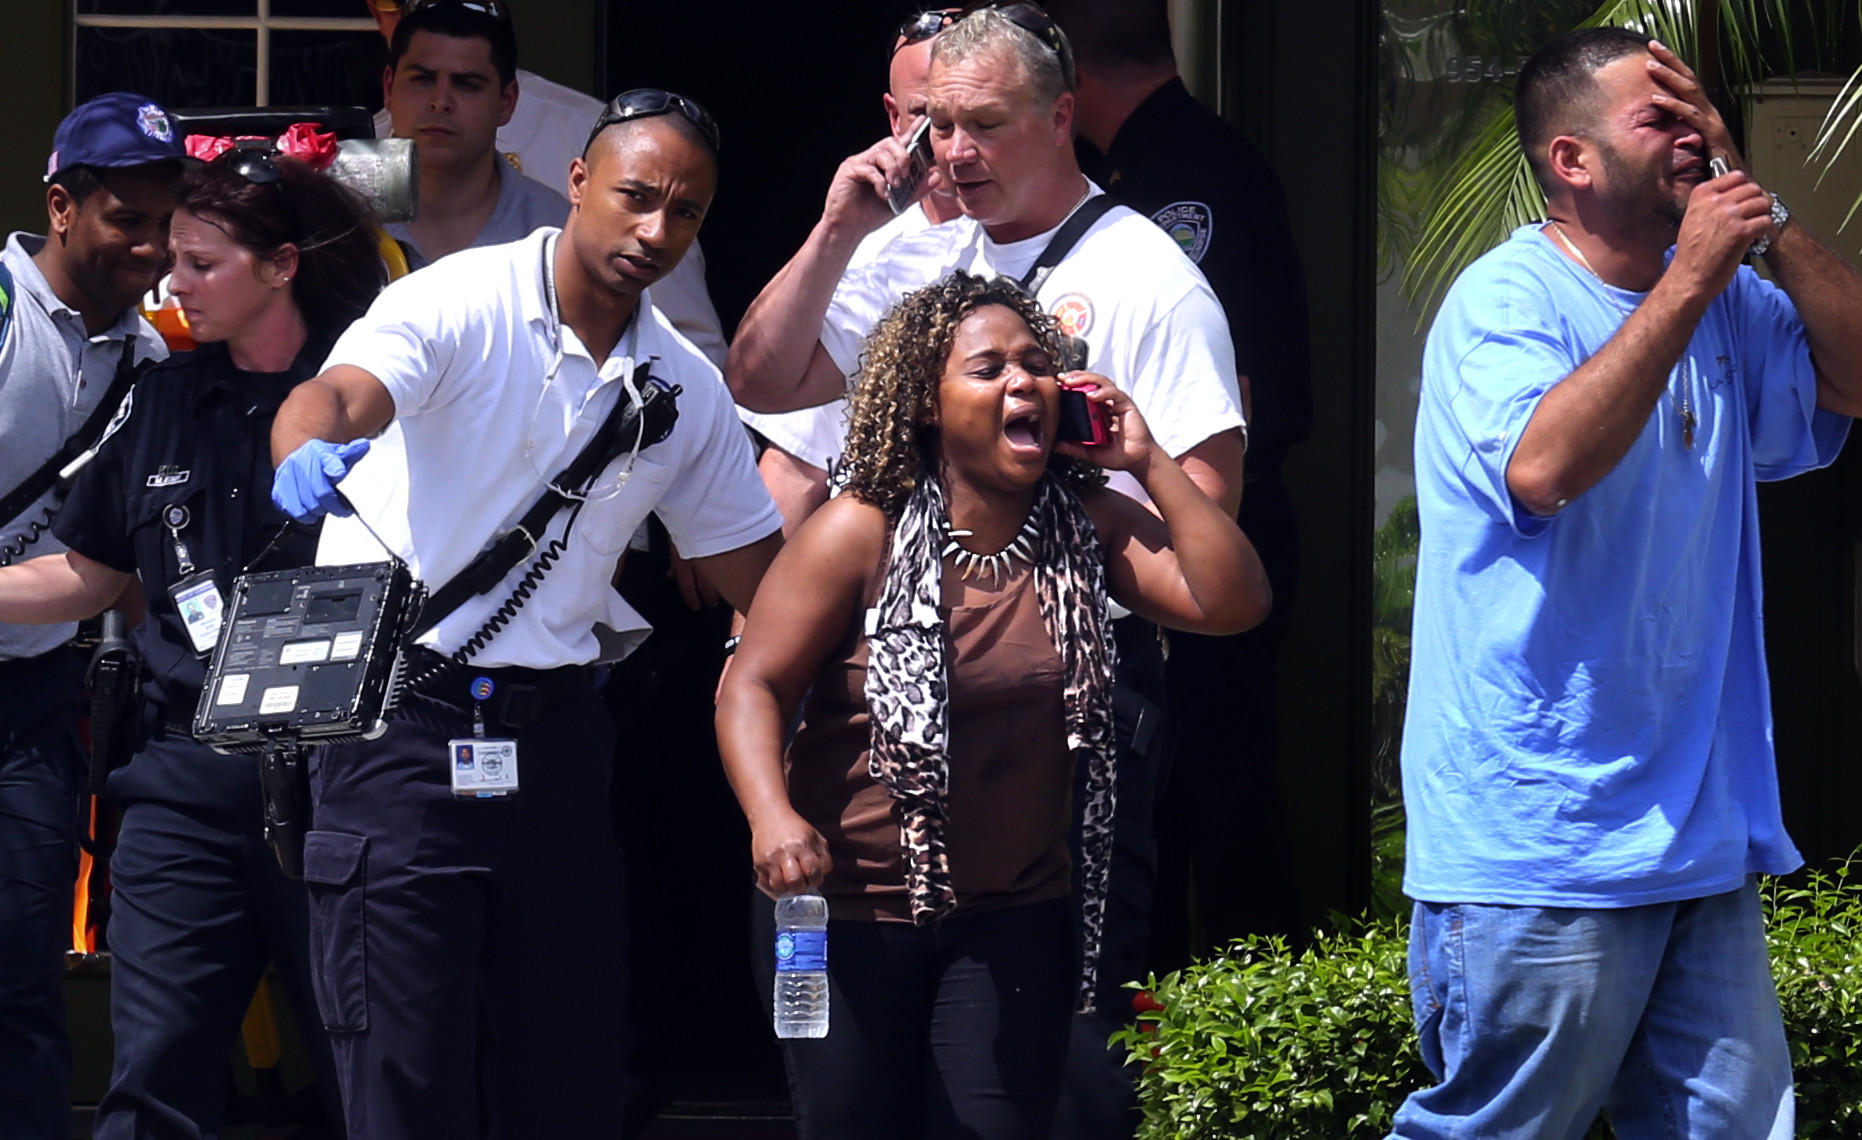 A mother is led from the scene after two toddlers were pulled from a swimming pool in Sunrise.